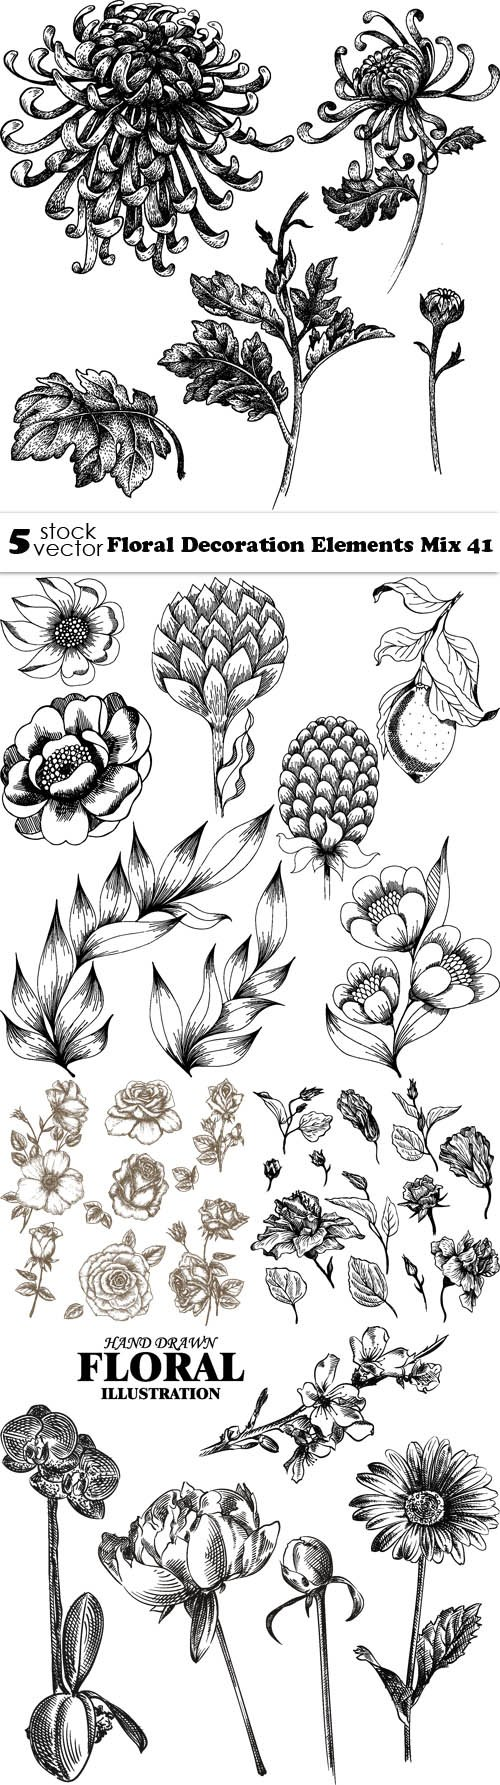 Vectors - Floral Decoration Elements Mix 41